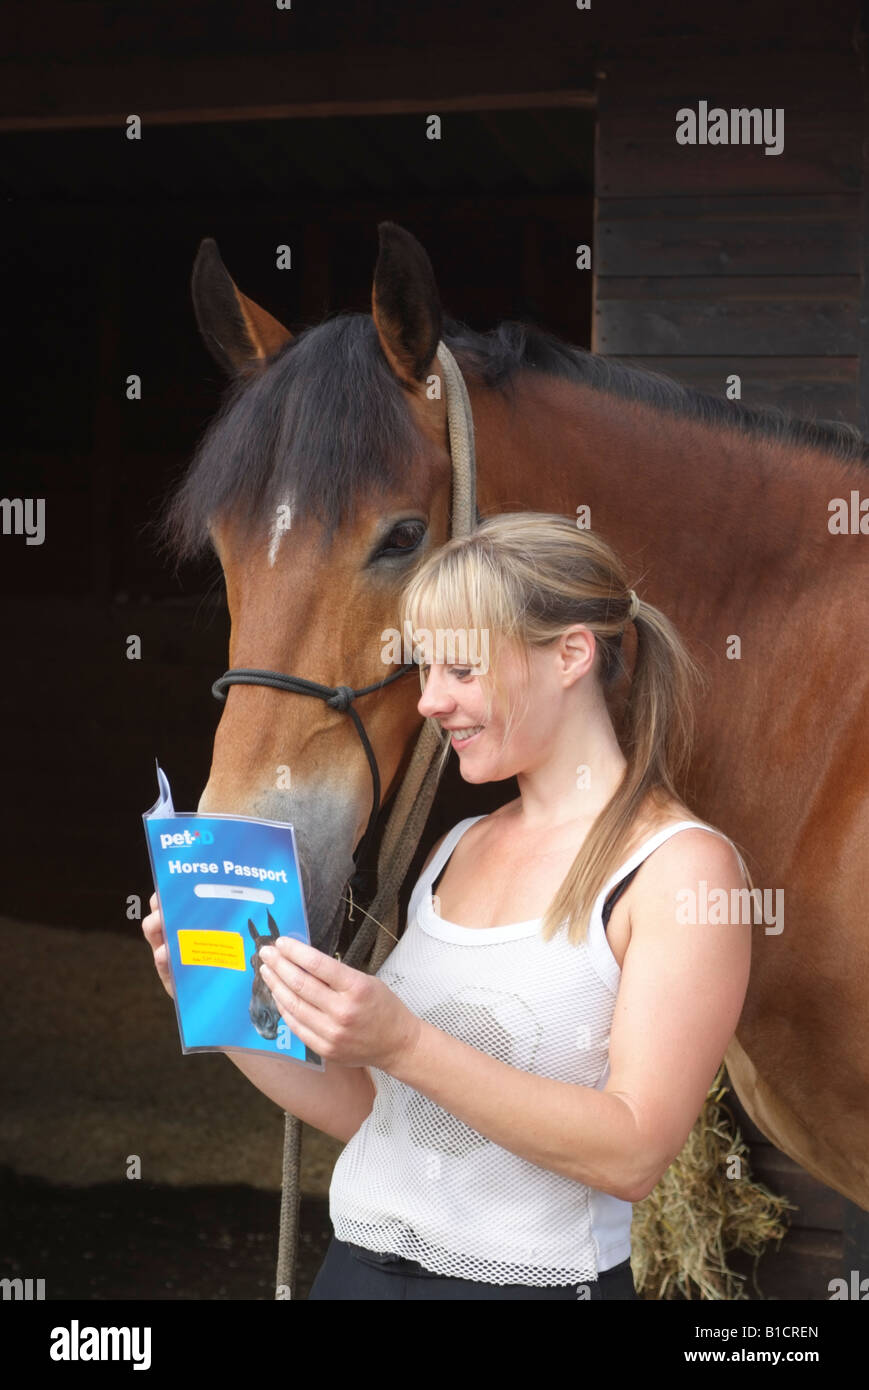 Reading Pet ID Horse Passport with owner - Stock Image